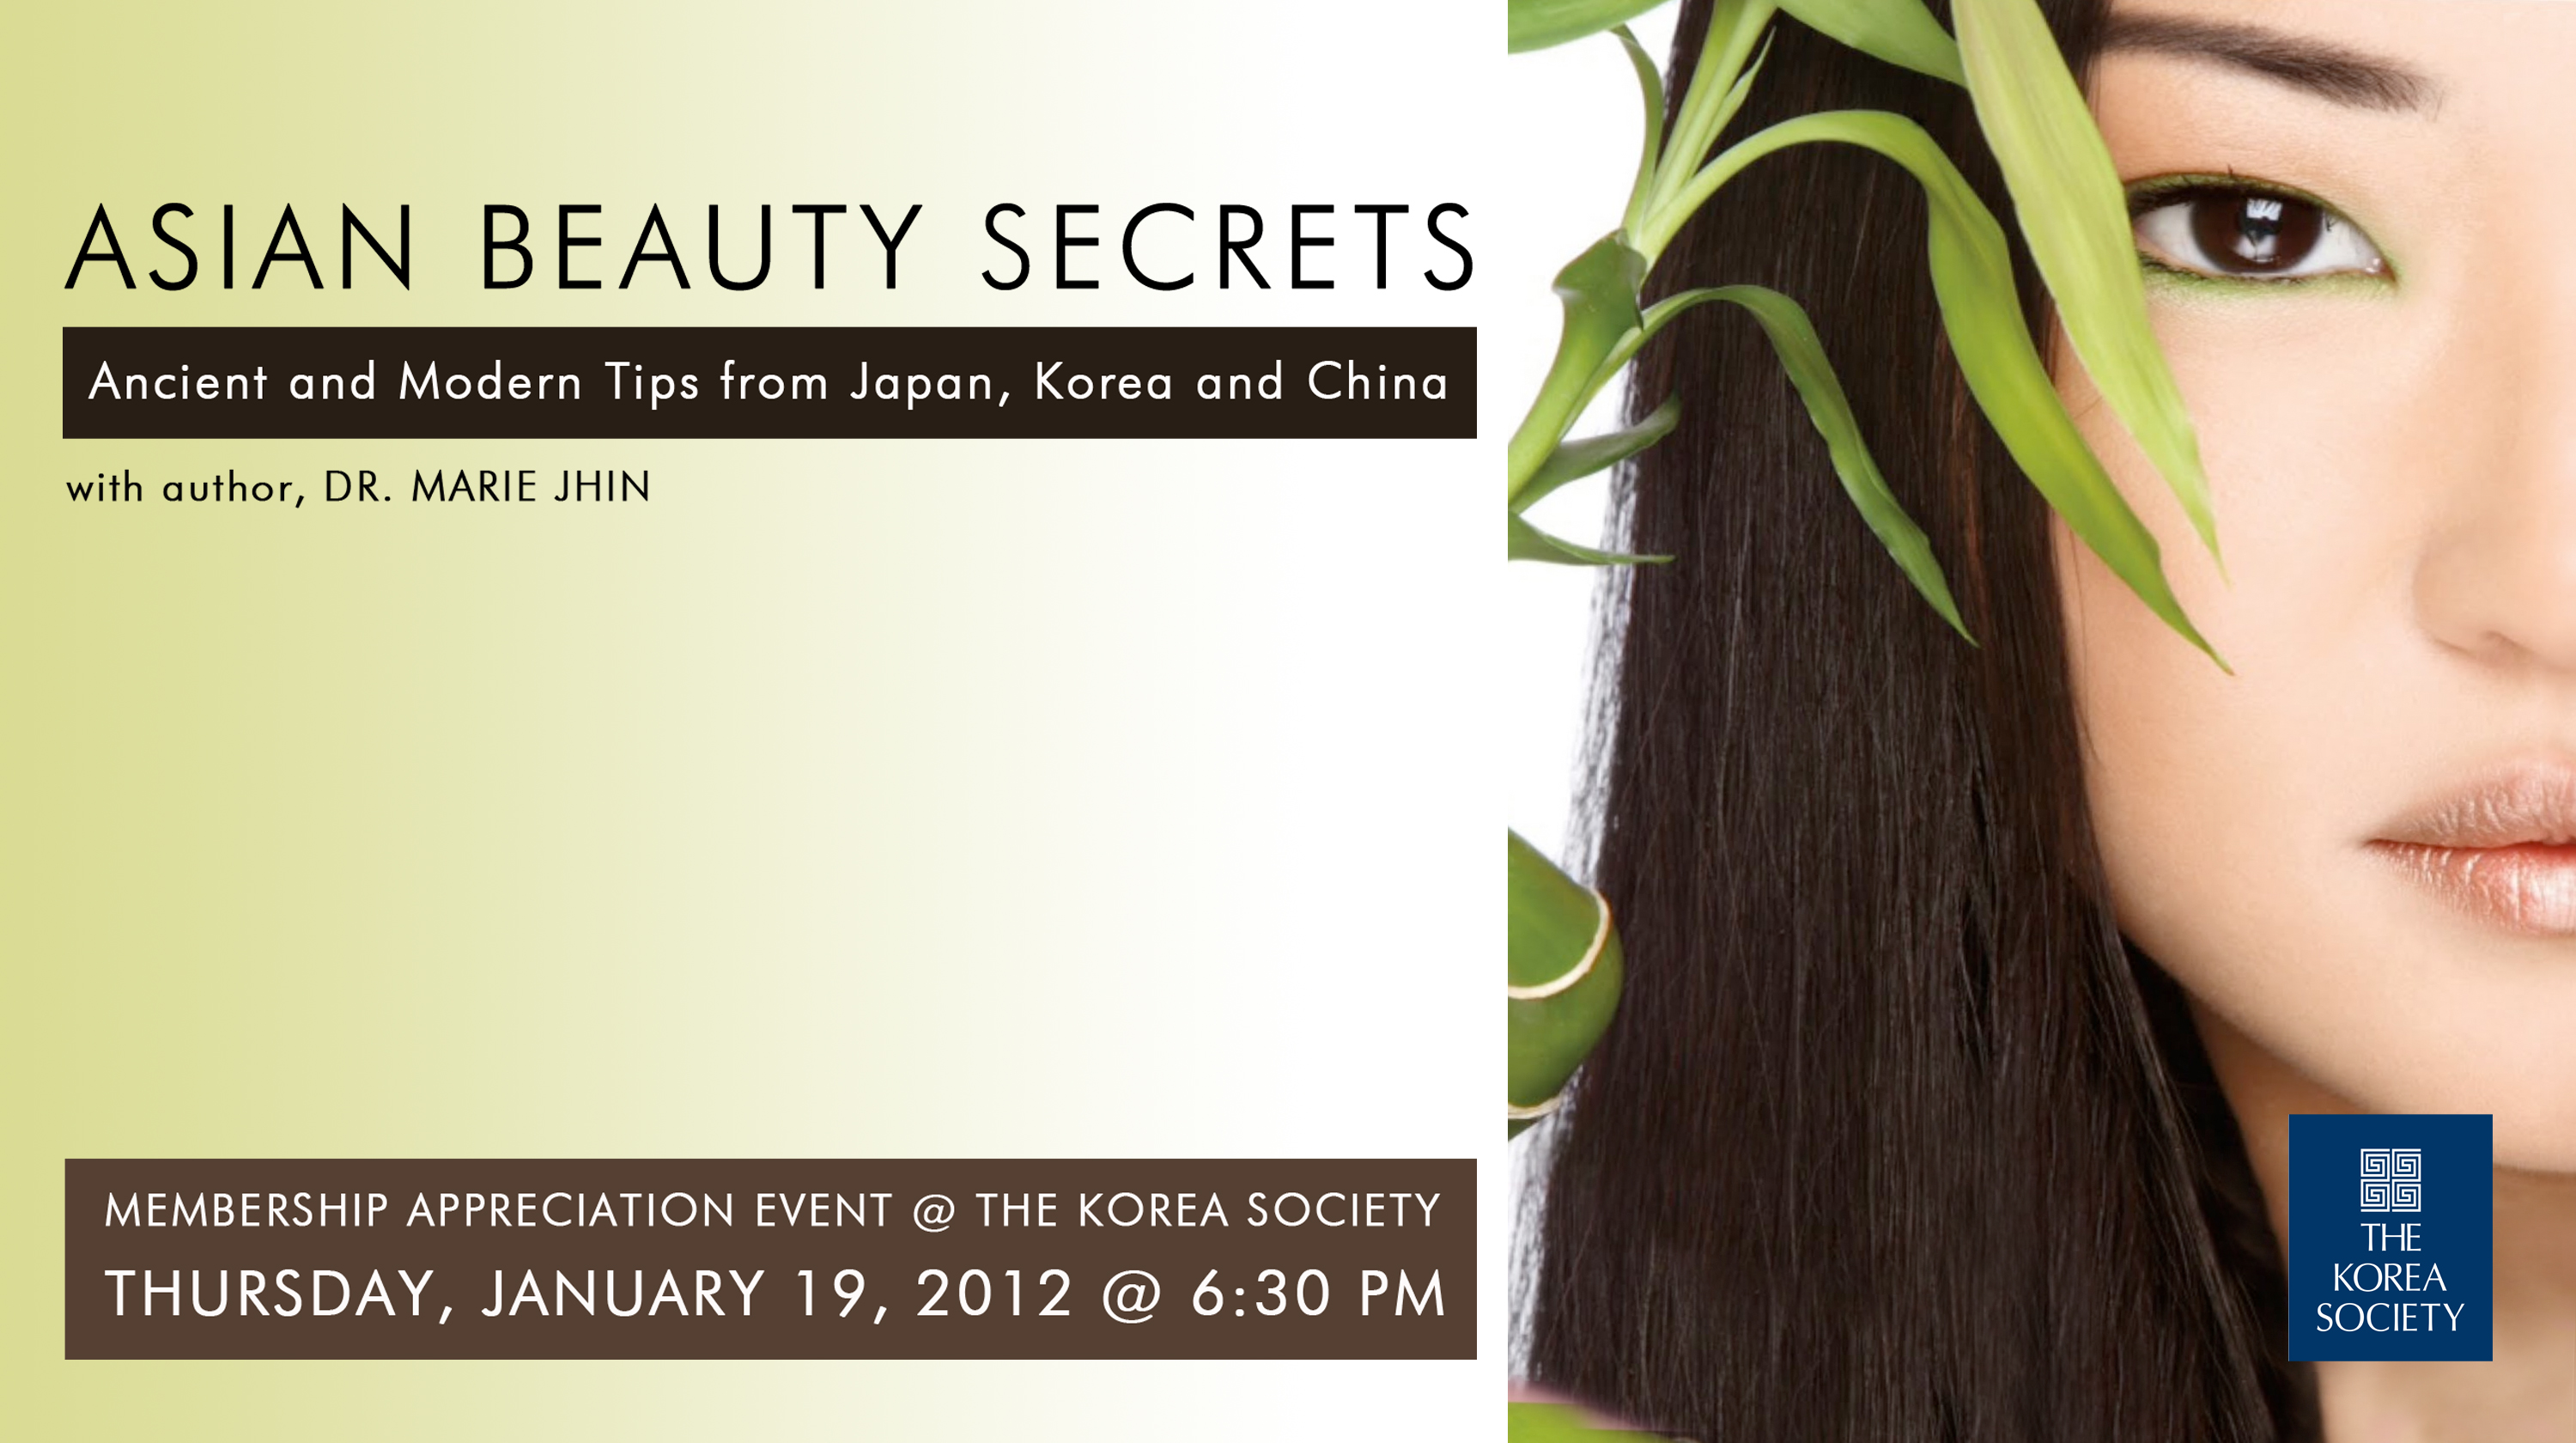 Asian Beauty Secrets: Ancient and Modern Tips from Japan, Korea